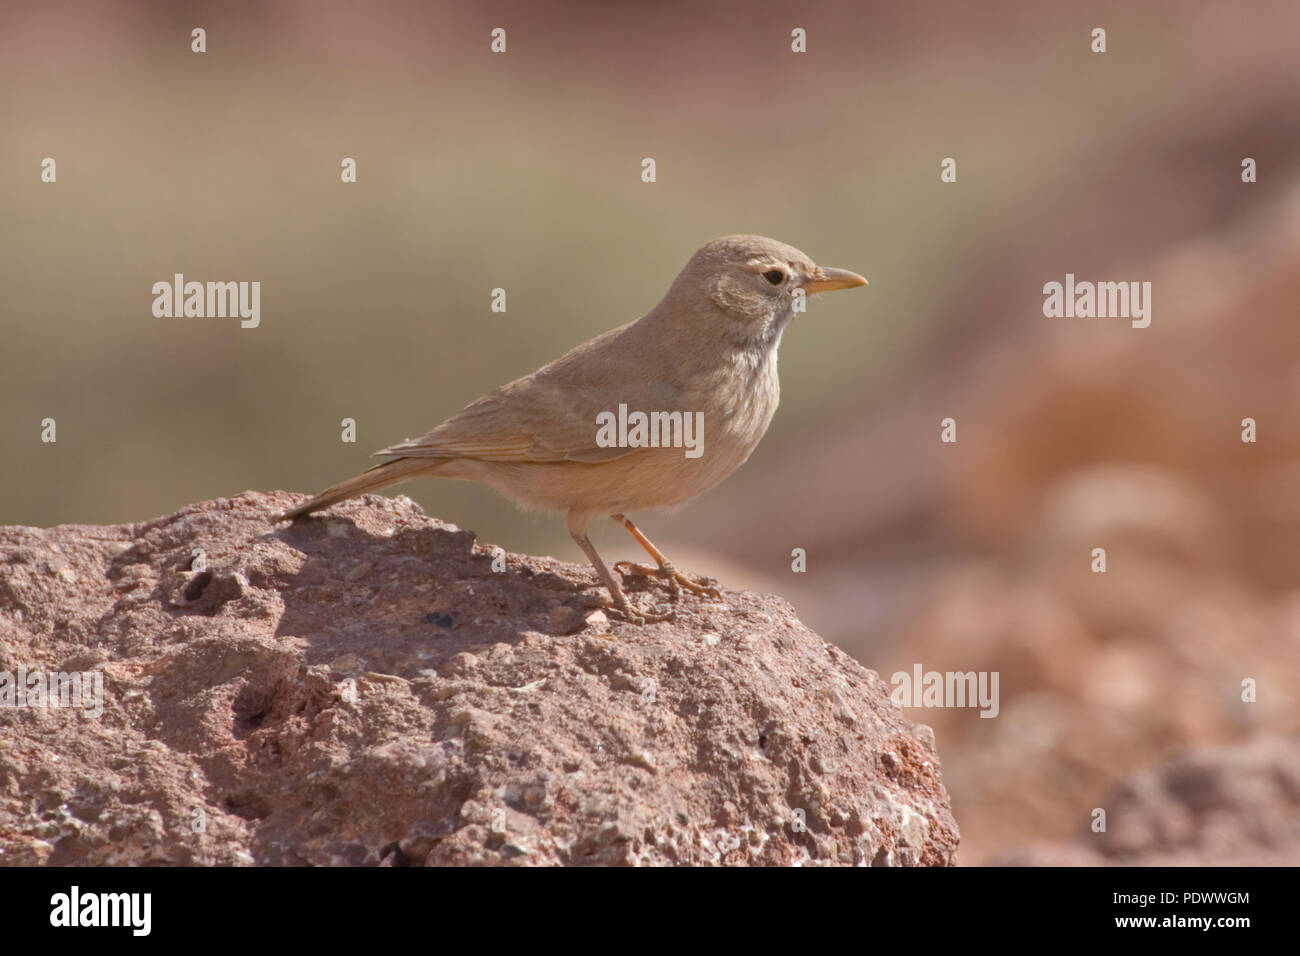 Desert Lark on a rocky stone, side view. - Stock Image